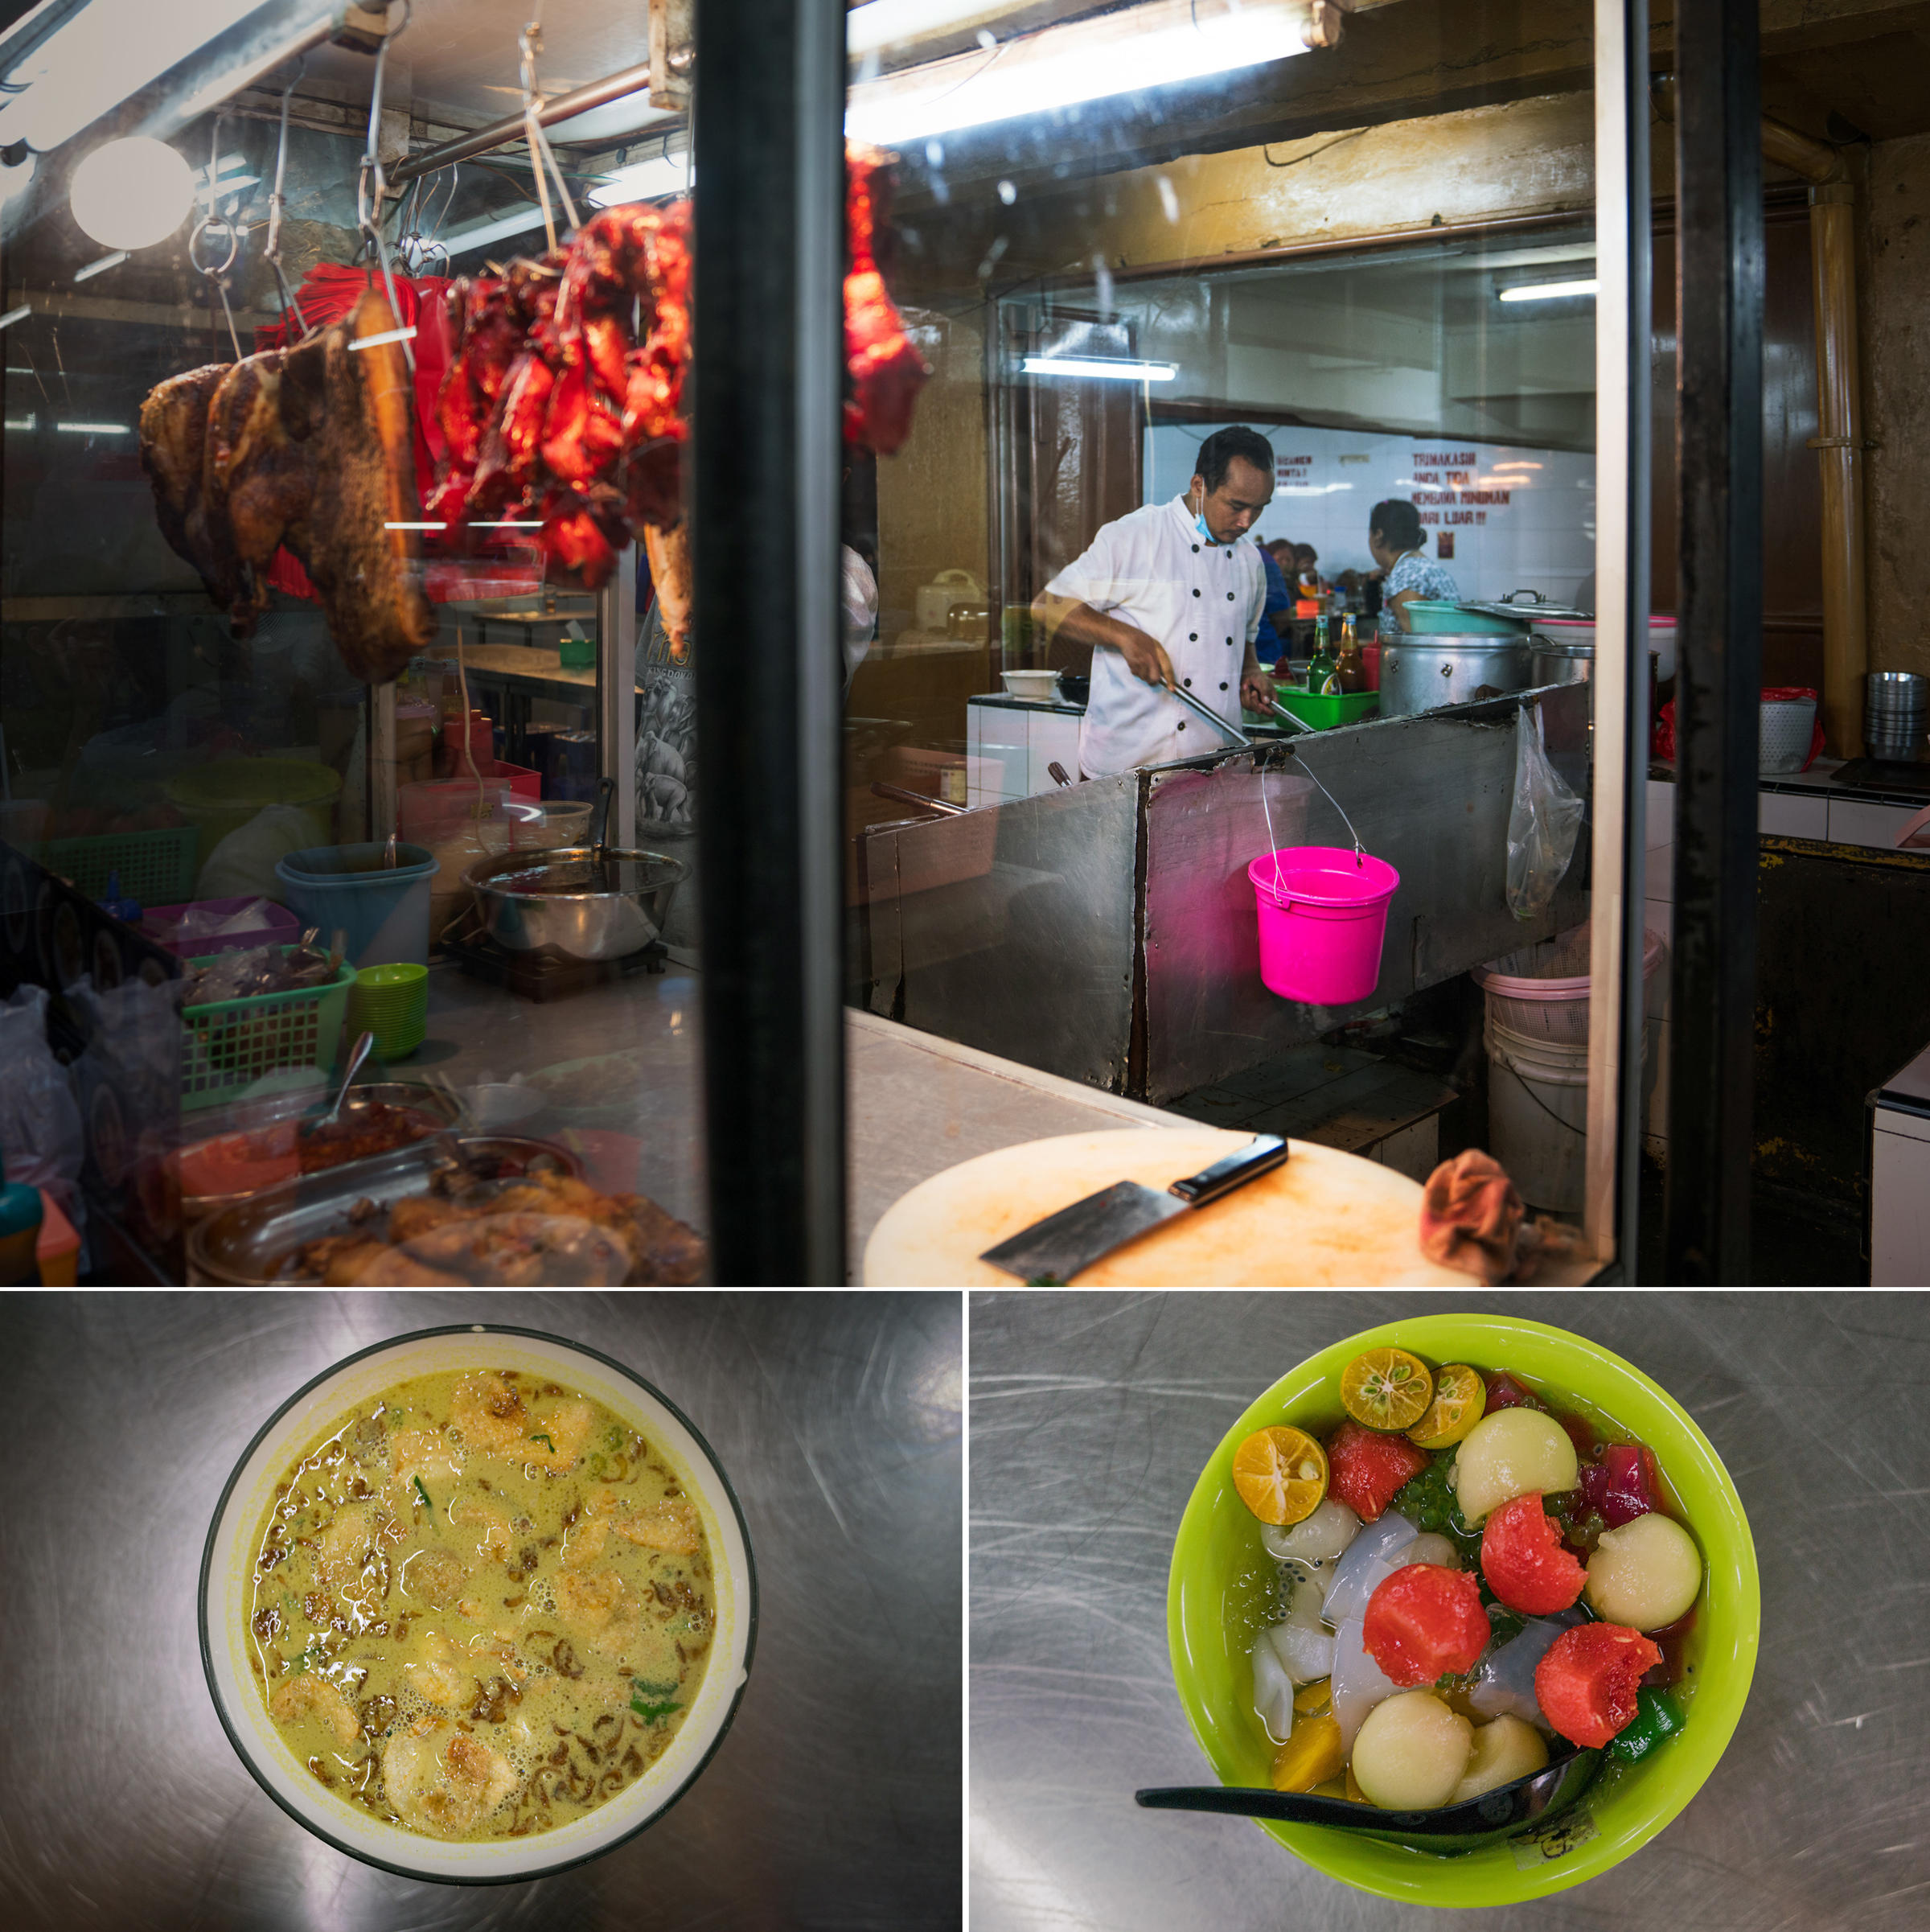 201711: Indonesian Food Blogger: The Unifying Power Of Cuisine And